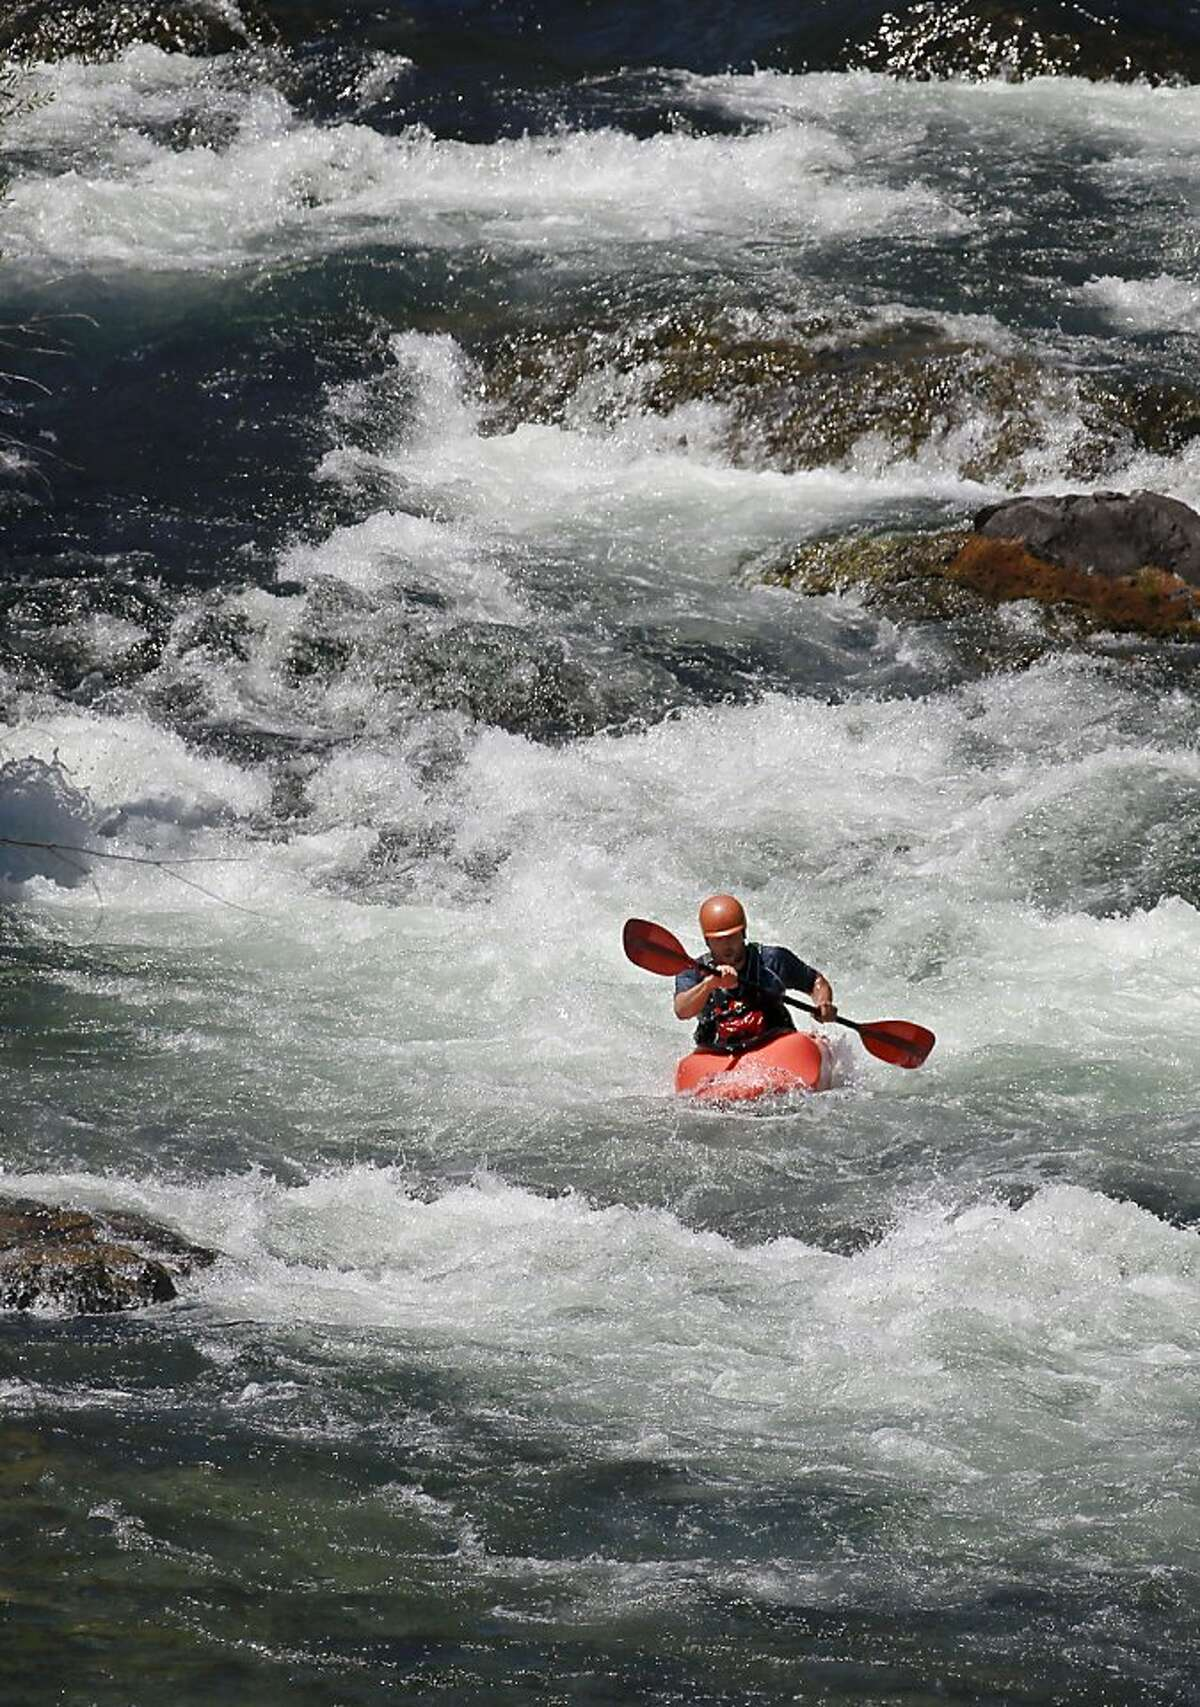 Nick Walker of Weaverville kayaks the rapids of the Trininty River below Lewiston Dam in Lewiston, Calif on Friday July 19, 2013. Low water and a giant salmon run has created concern about a fish die off in the Klamath River similar to what happened in 2002. The Bureau of Reclamation is proposing releases of water from Trinity Dam to help fish but agriculture interests have threatened to block the idea.